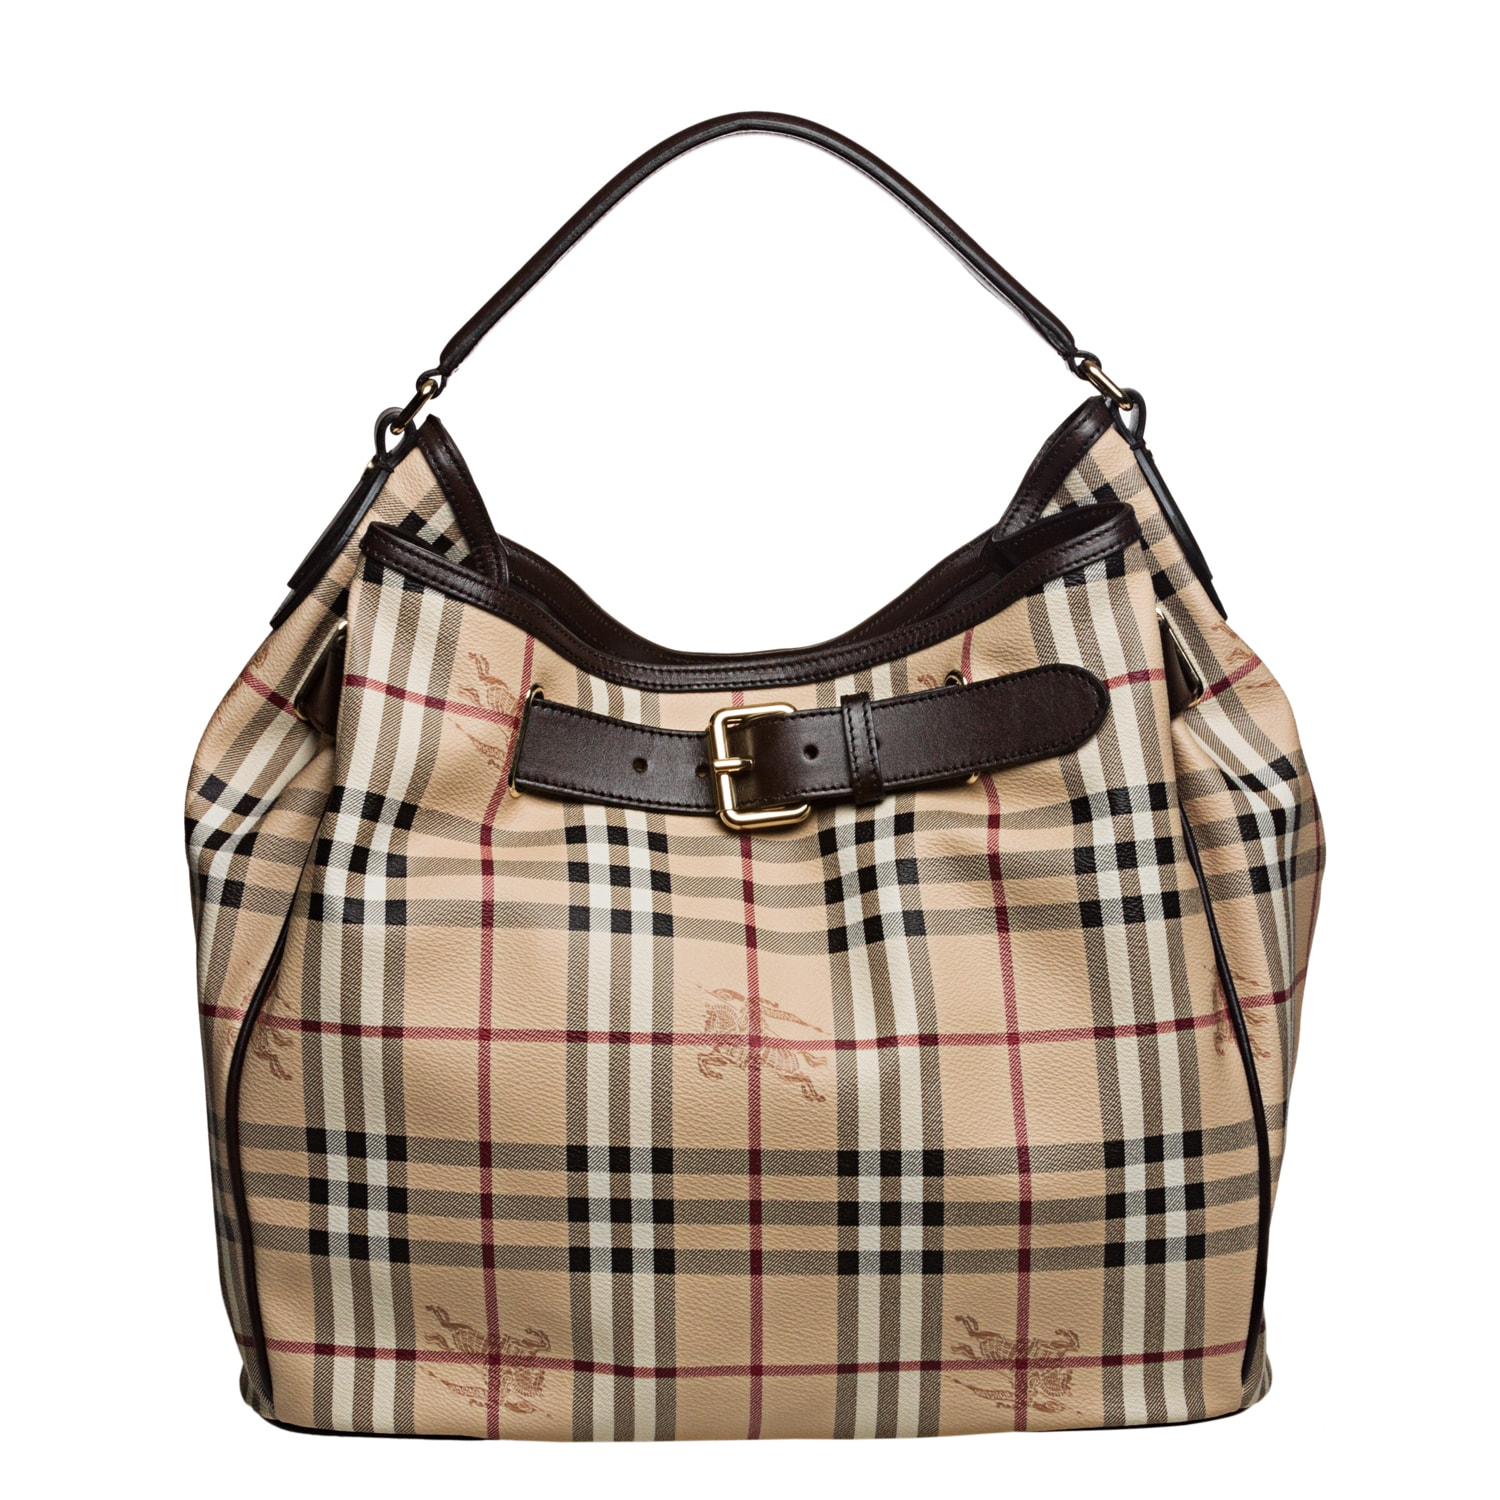 Burberry Medium Haymarket Check Belted Hobo Bag Free Shipping